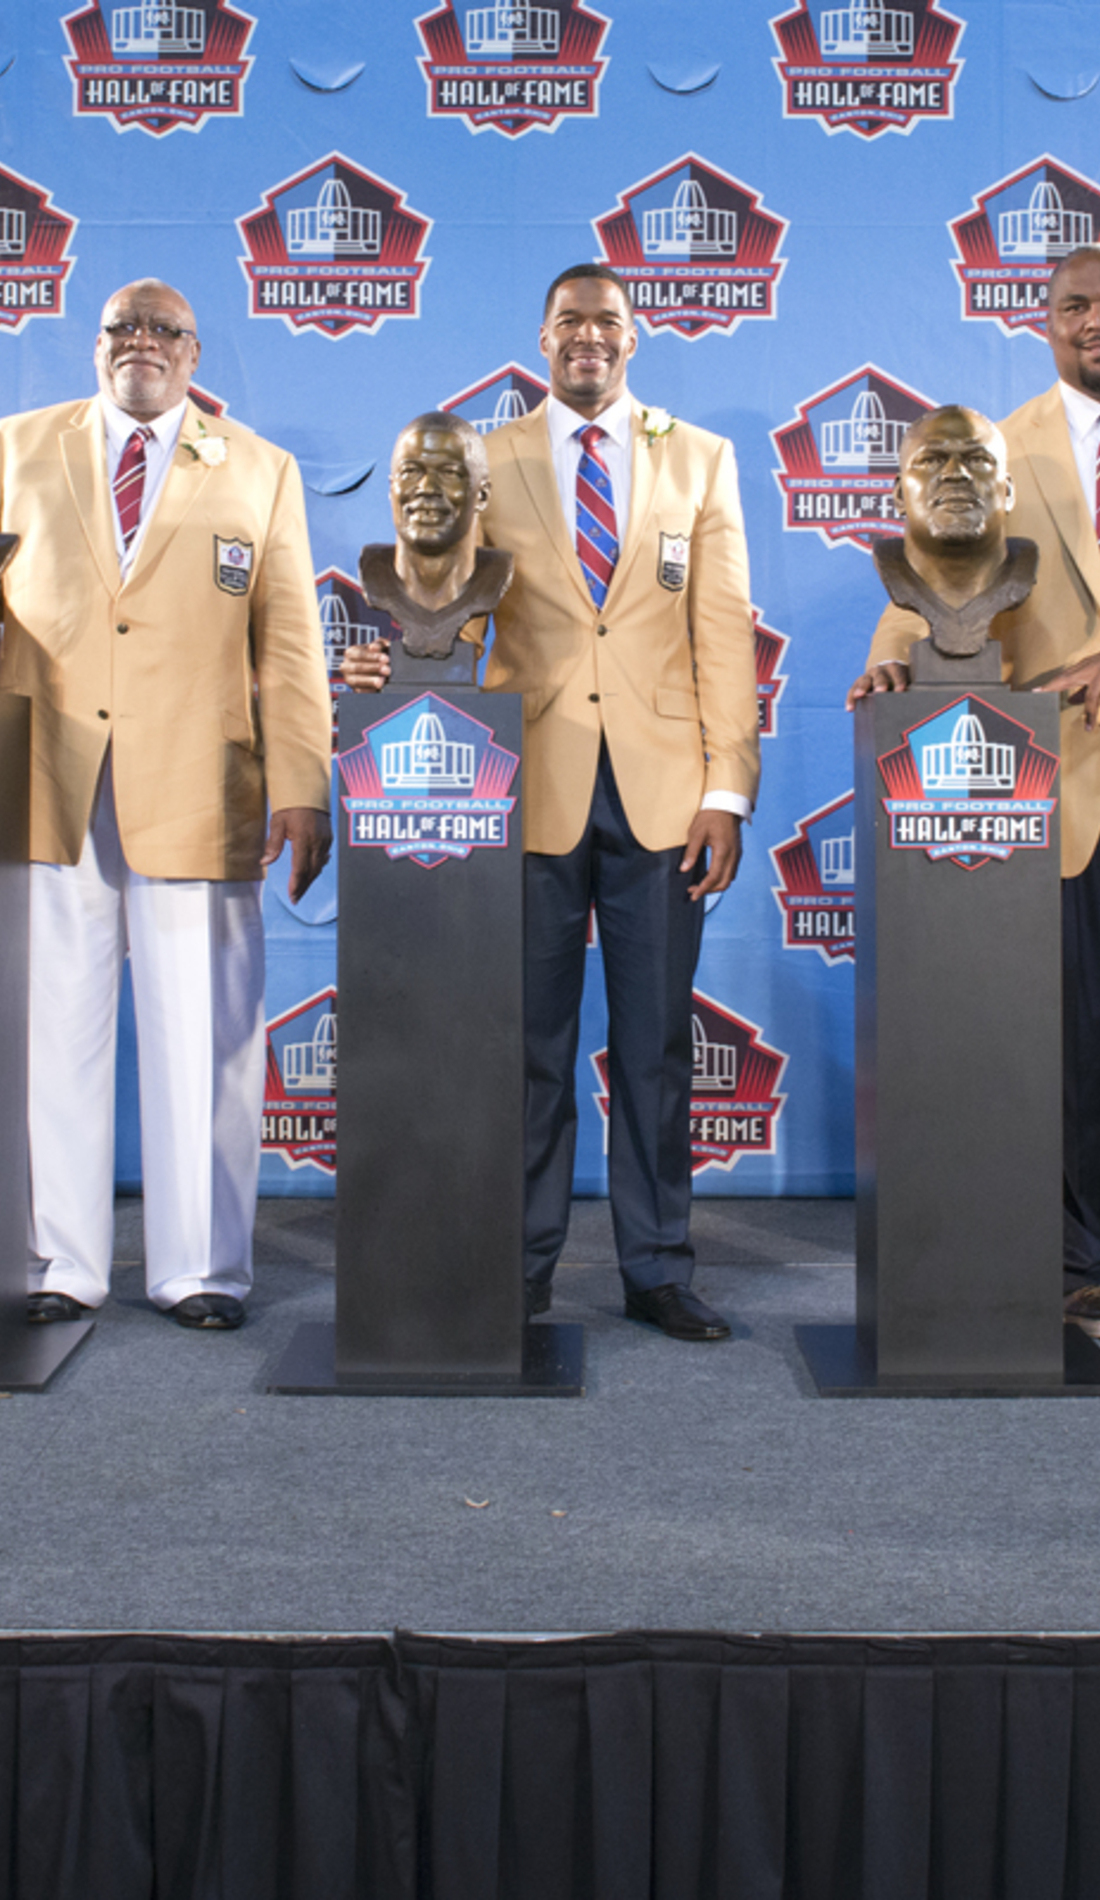 A NFL Hall of Fame Weekend live event